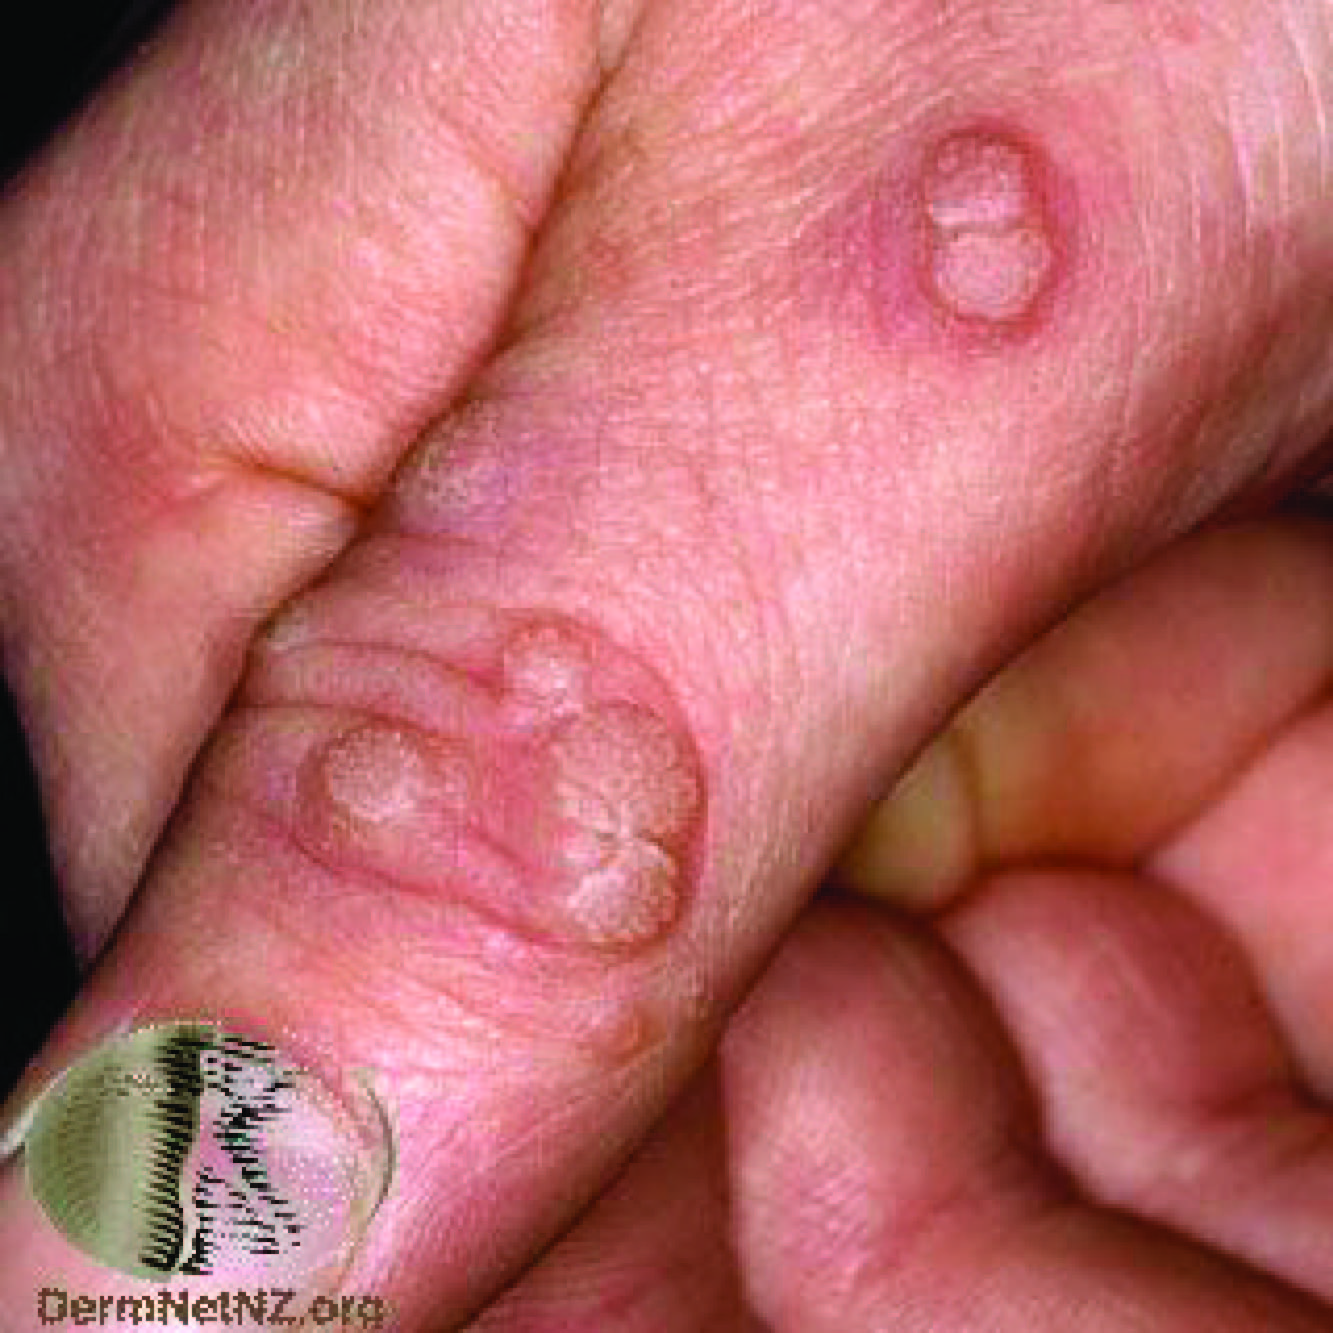 wart treatment dermnet